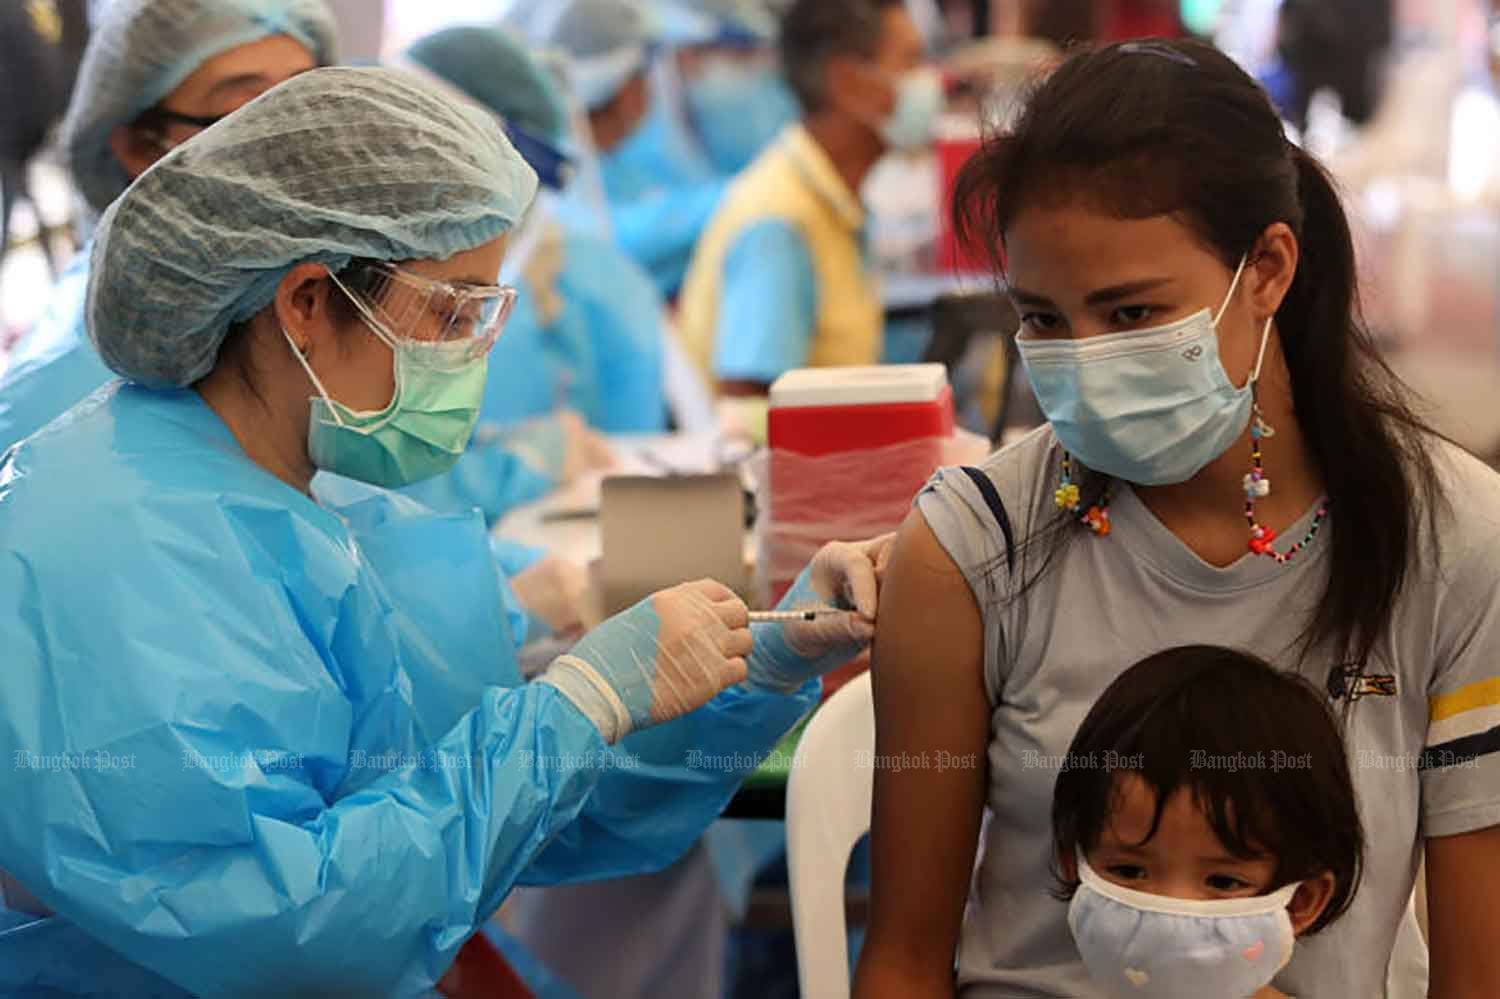 A woman is given a Covid-19 jab at Lotus Rama IV where an area has been converted into a vaccination venue for people in communities in Klong Toey in the capital where the virus has been spreading rapidly in recent days. (Photo by Wichan Charoenkiatpakul)